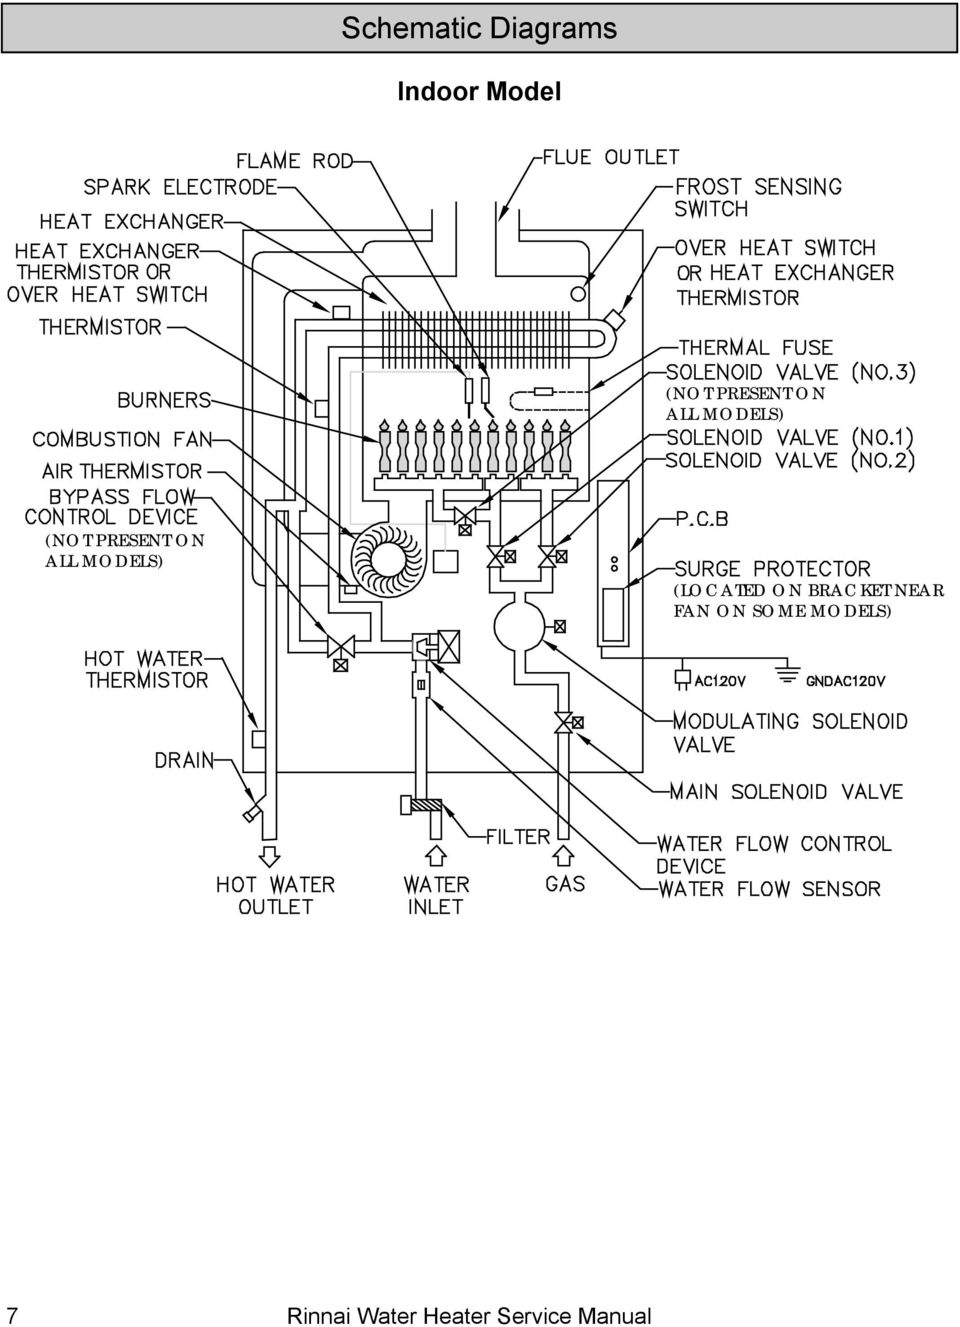 Magnificent Burner Wiring Diagram Thermistor Mold